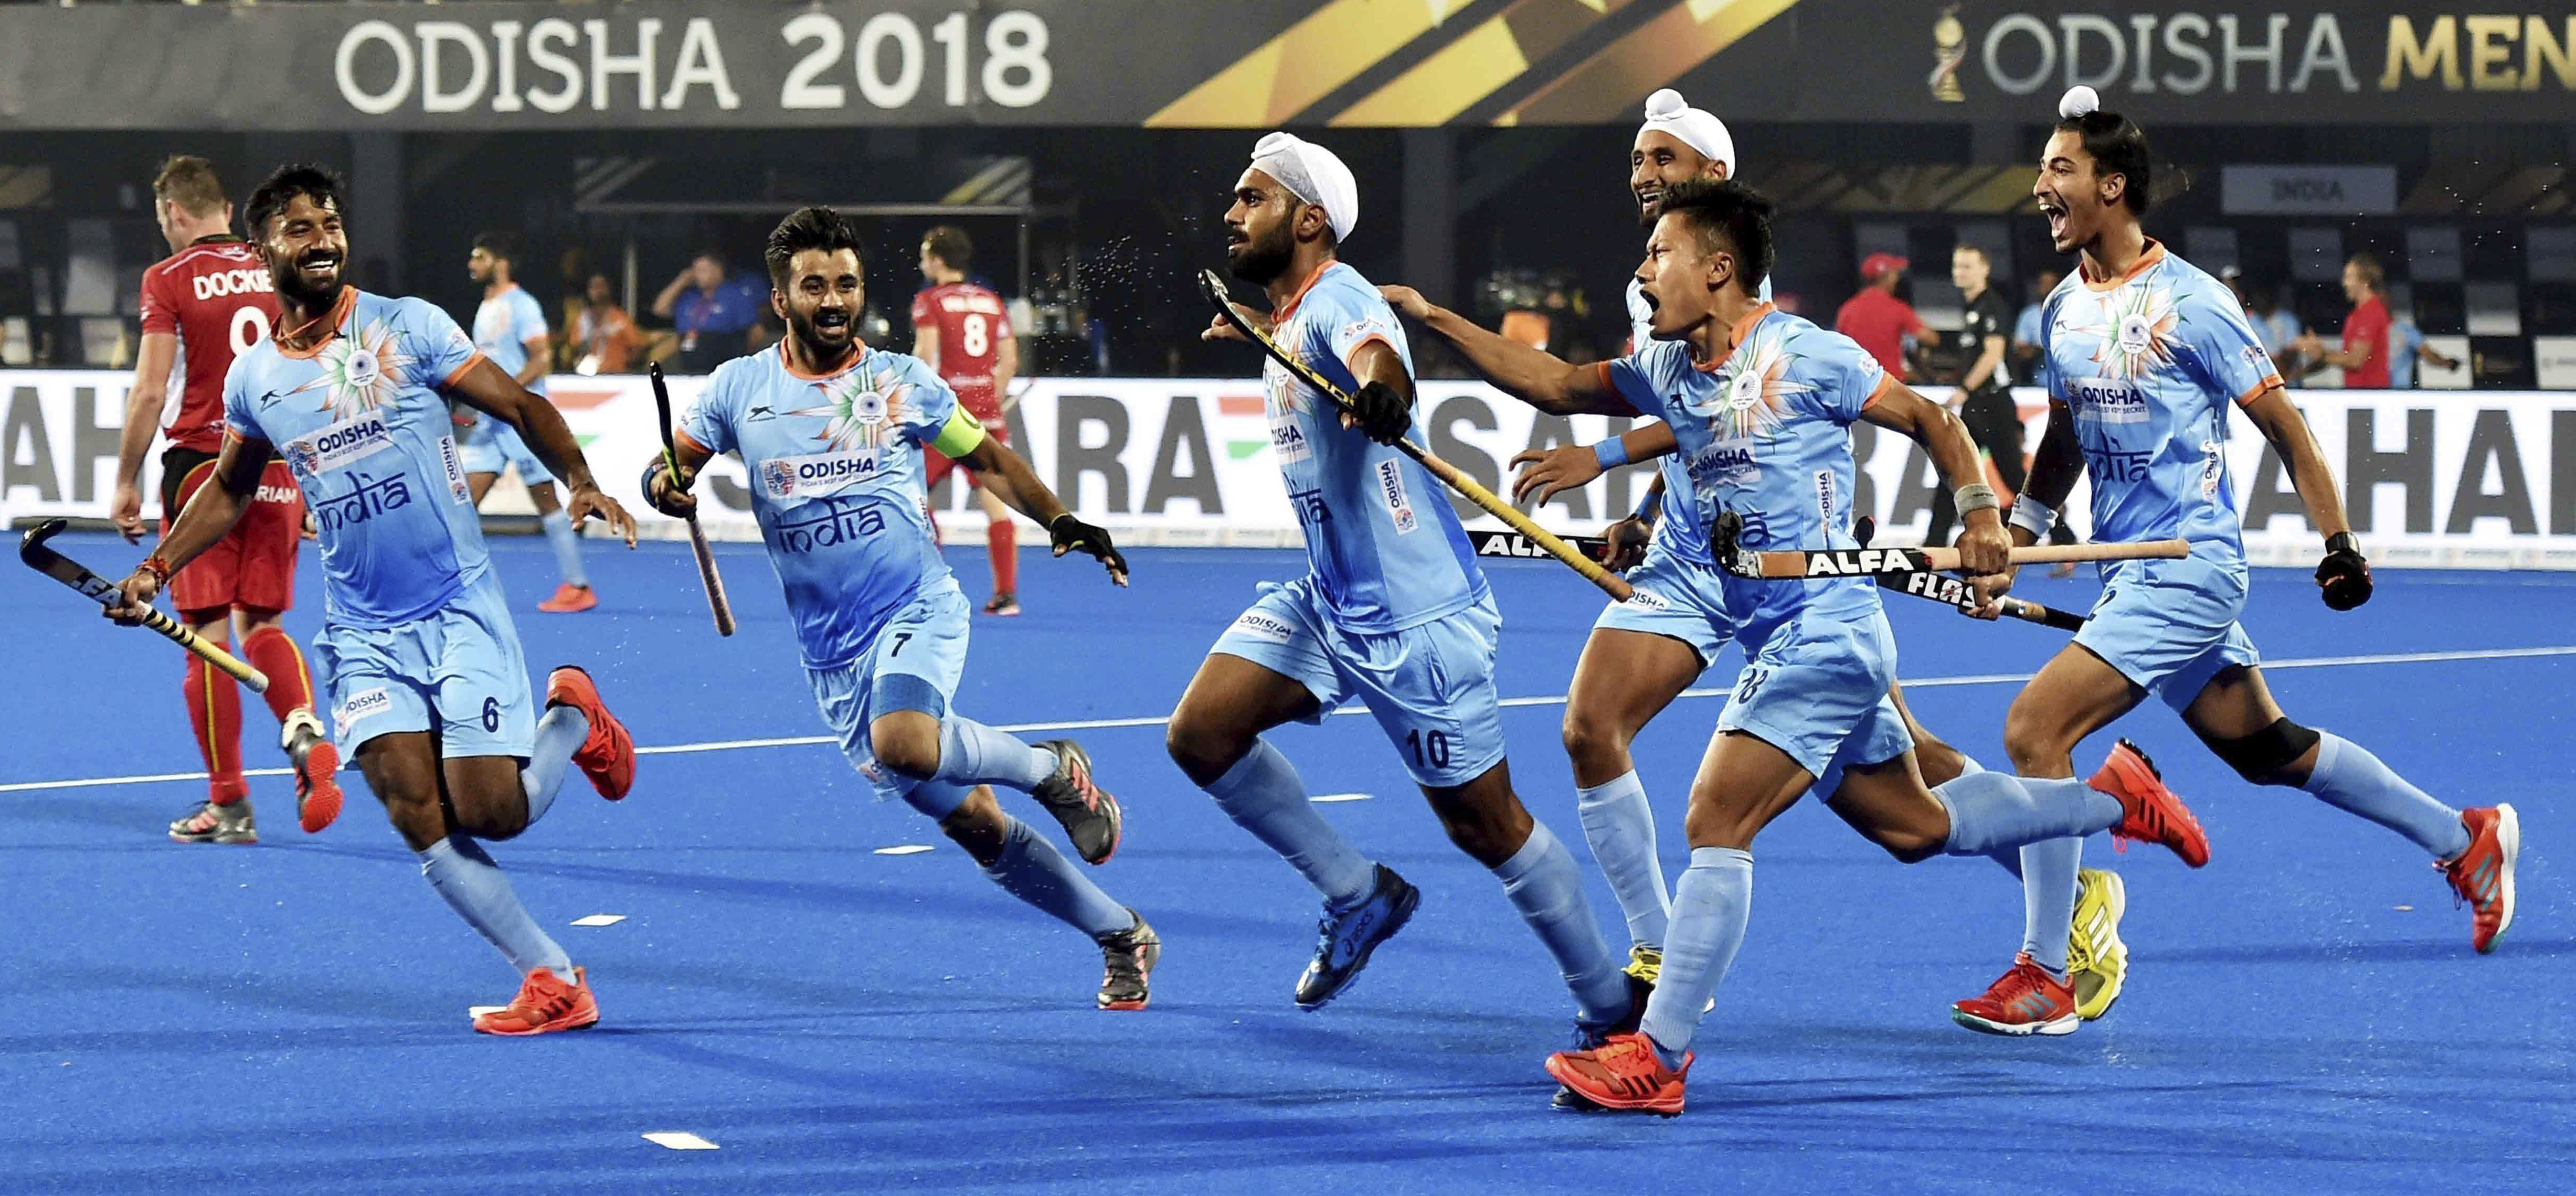 India (blue) Captain Manpreet Singh celebrates with teammates after a goal during a match against Belgium(red) for Men's Hockey World Cup 2018, in Bhubaneswar - PTI